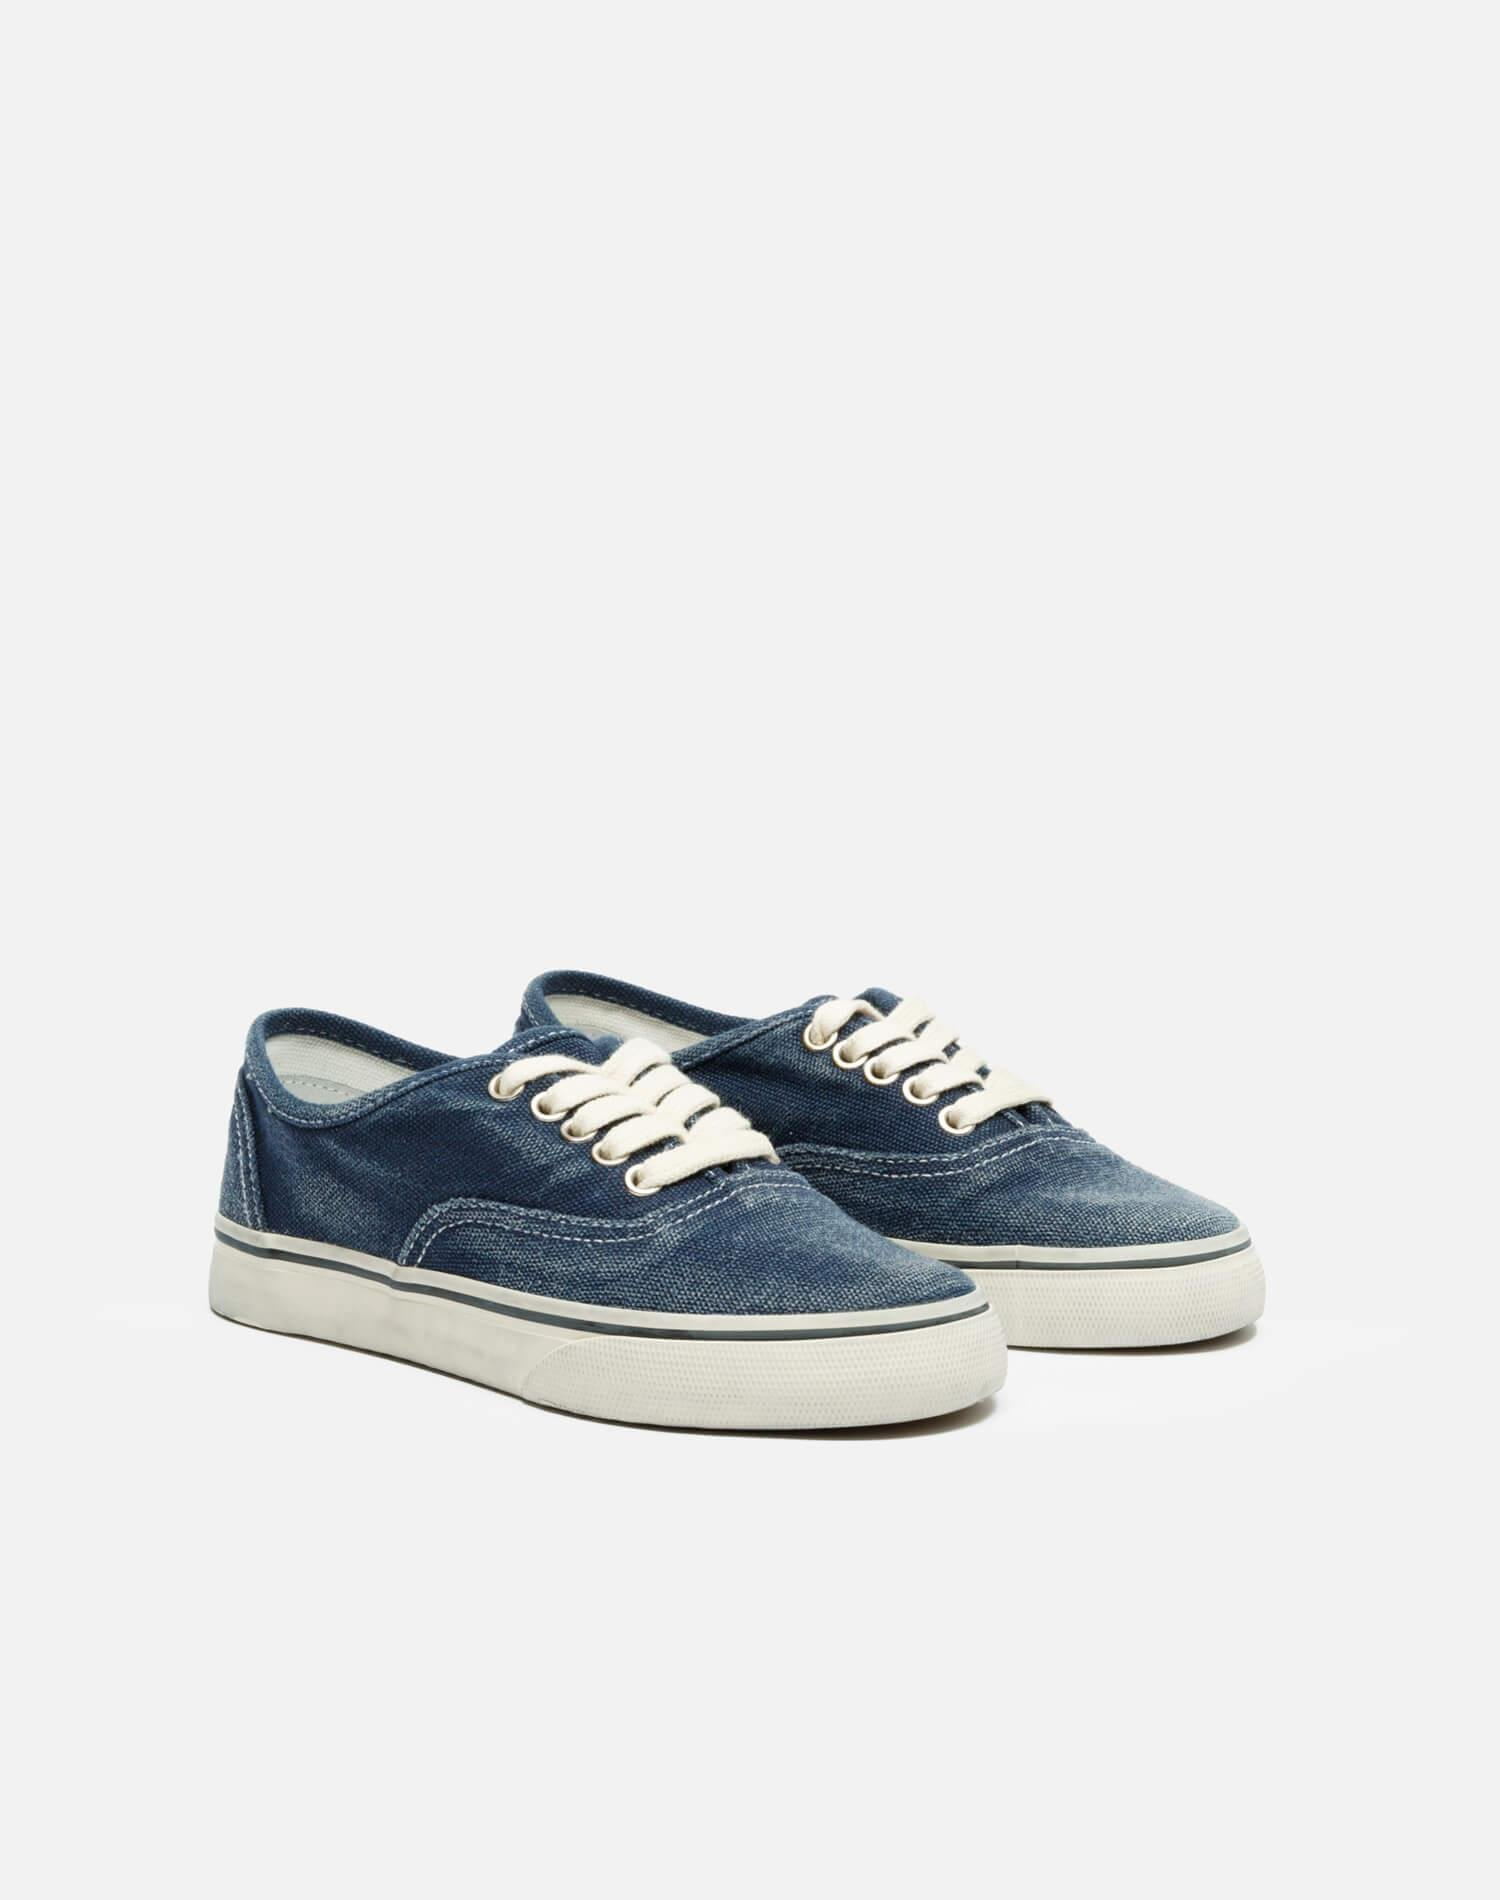 70s Low Top Skate - Faded Navy 1